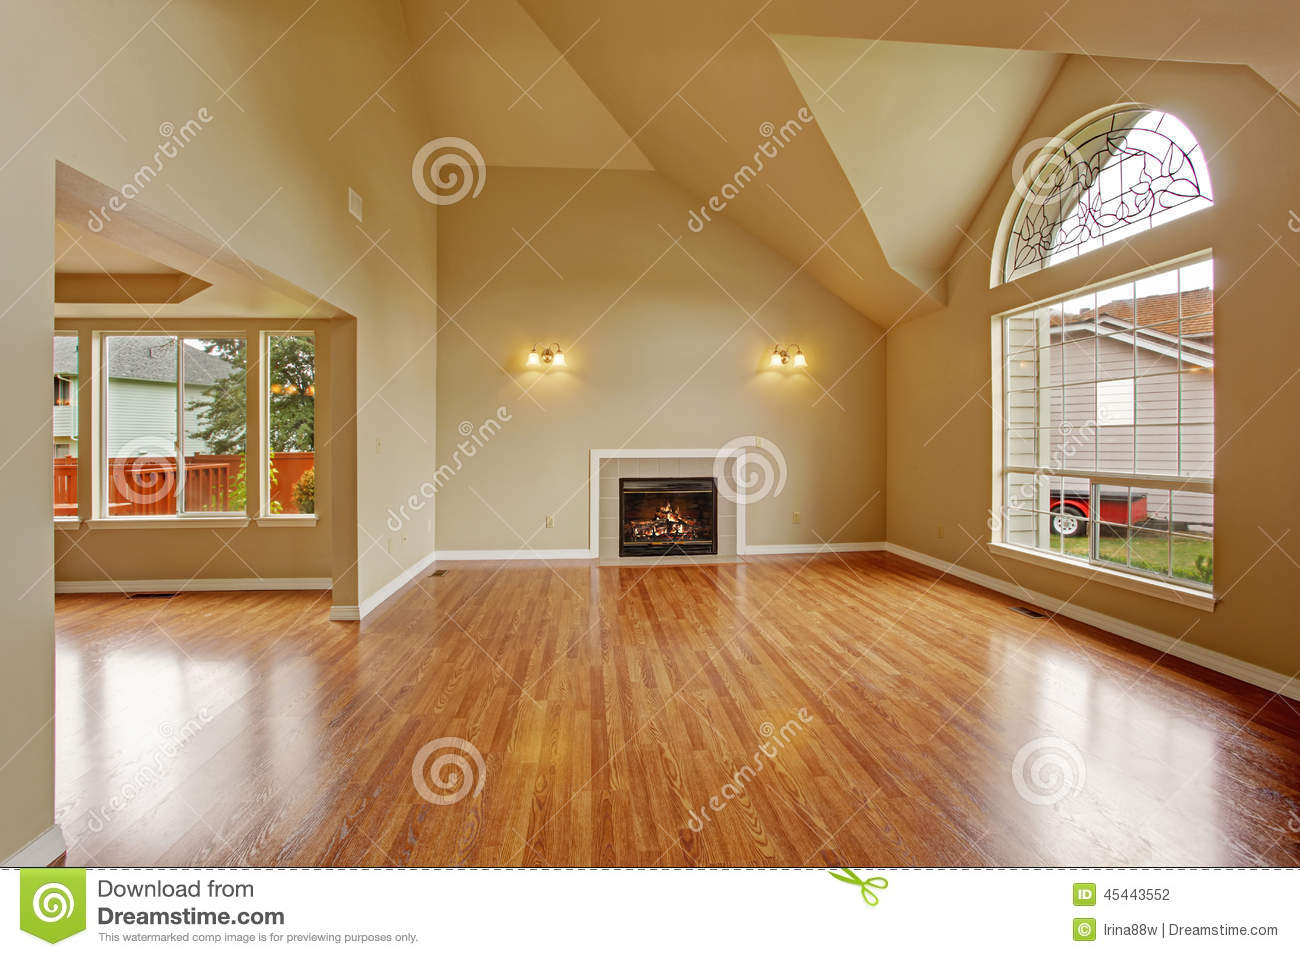 Hardwood Floors In Kitchen Yes Or No